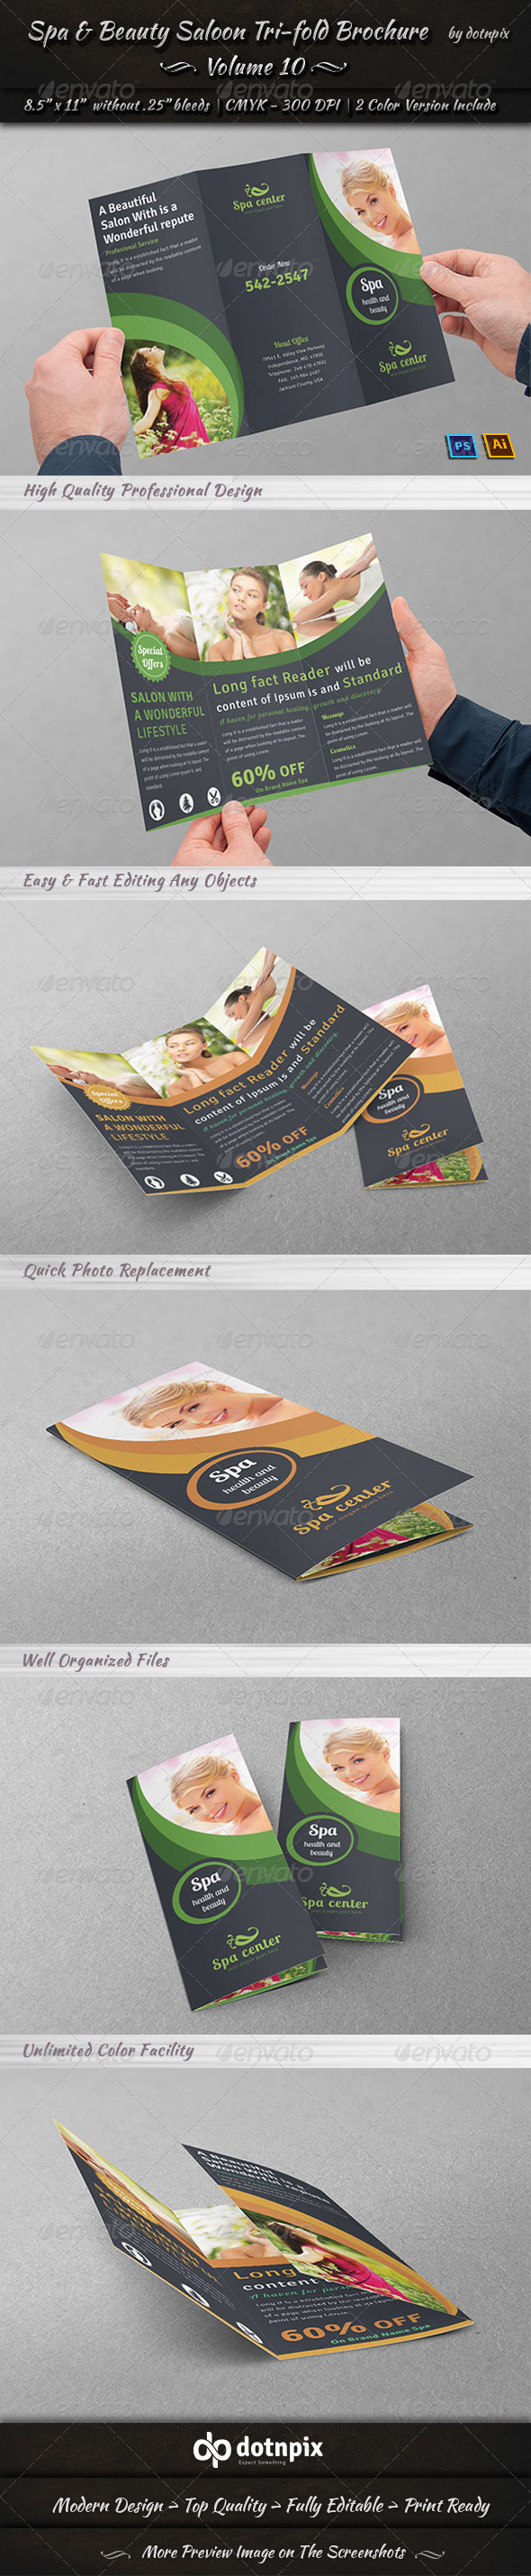 Spa & Beauty Saloon Tri-fold Brochure Volume 10